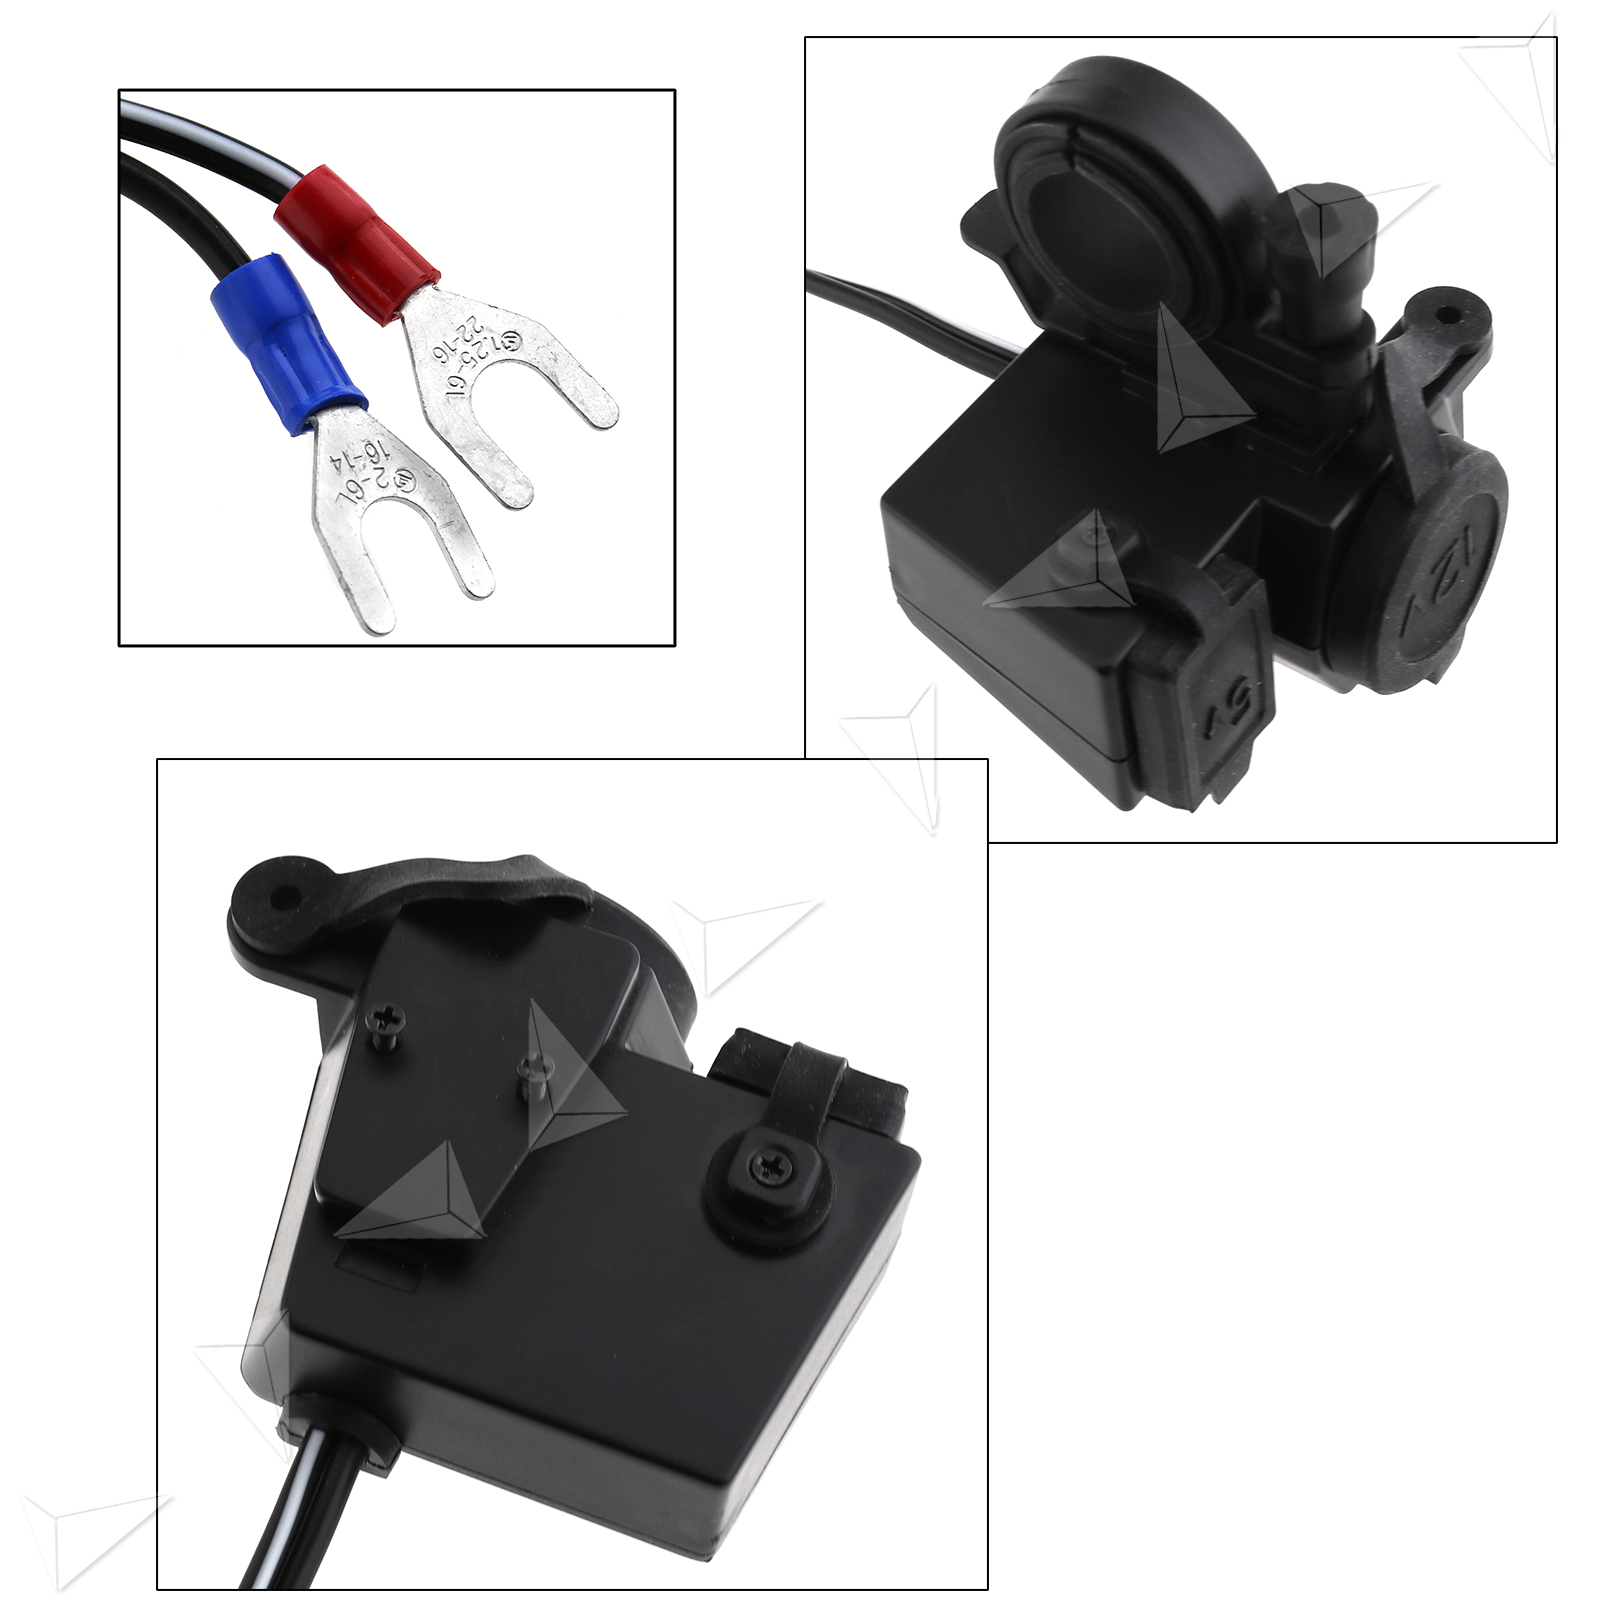 New 12v Motorcycle Cigarette Lighter Socket Usb Power Phone Charger With Fuse 735548158288